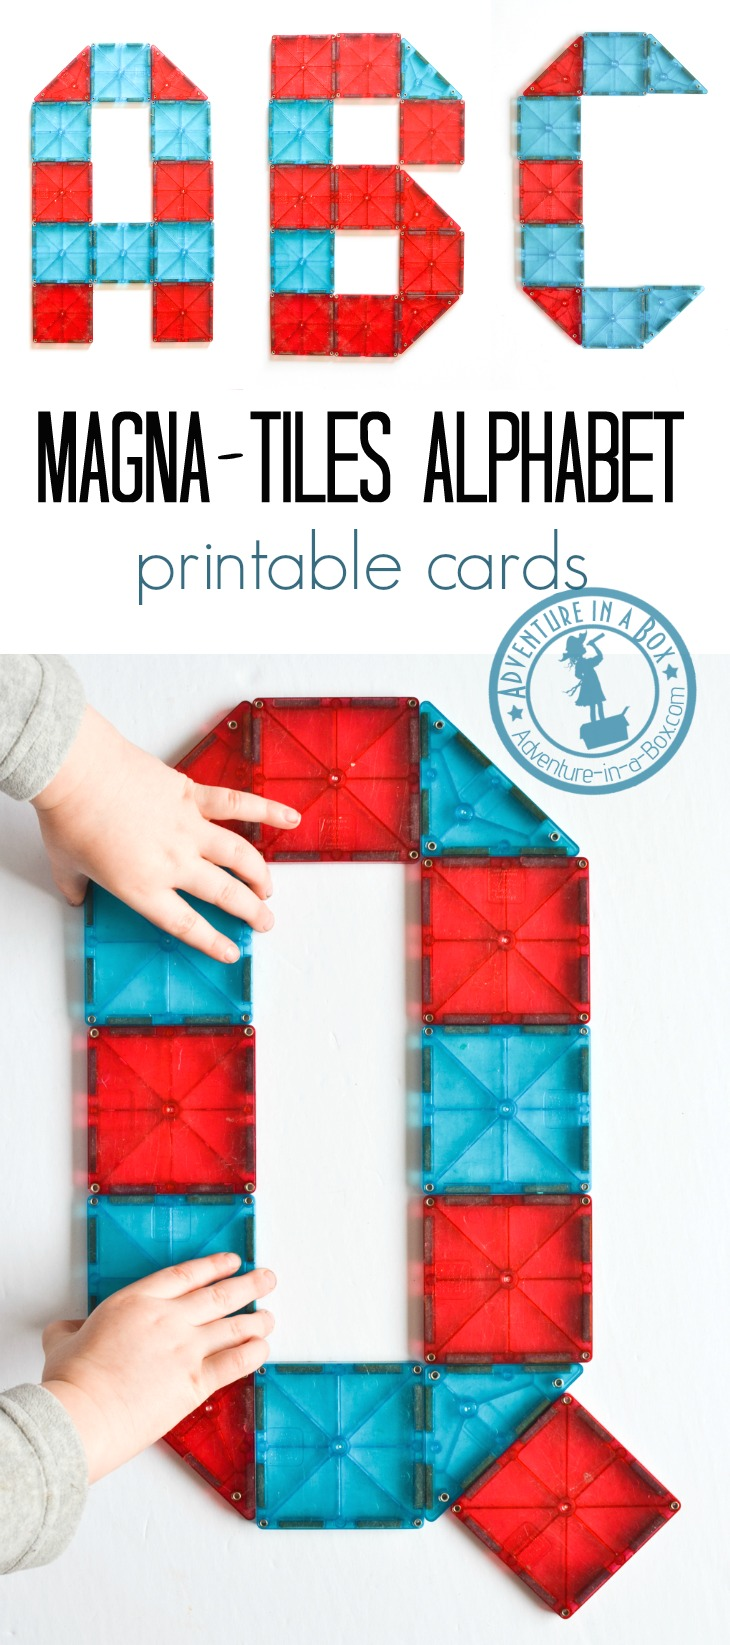 Magna-tiles Alphabet Printable Cards: Build the alphabet with magnetic tiles! Free printable cards of 26 letter designs for kids